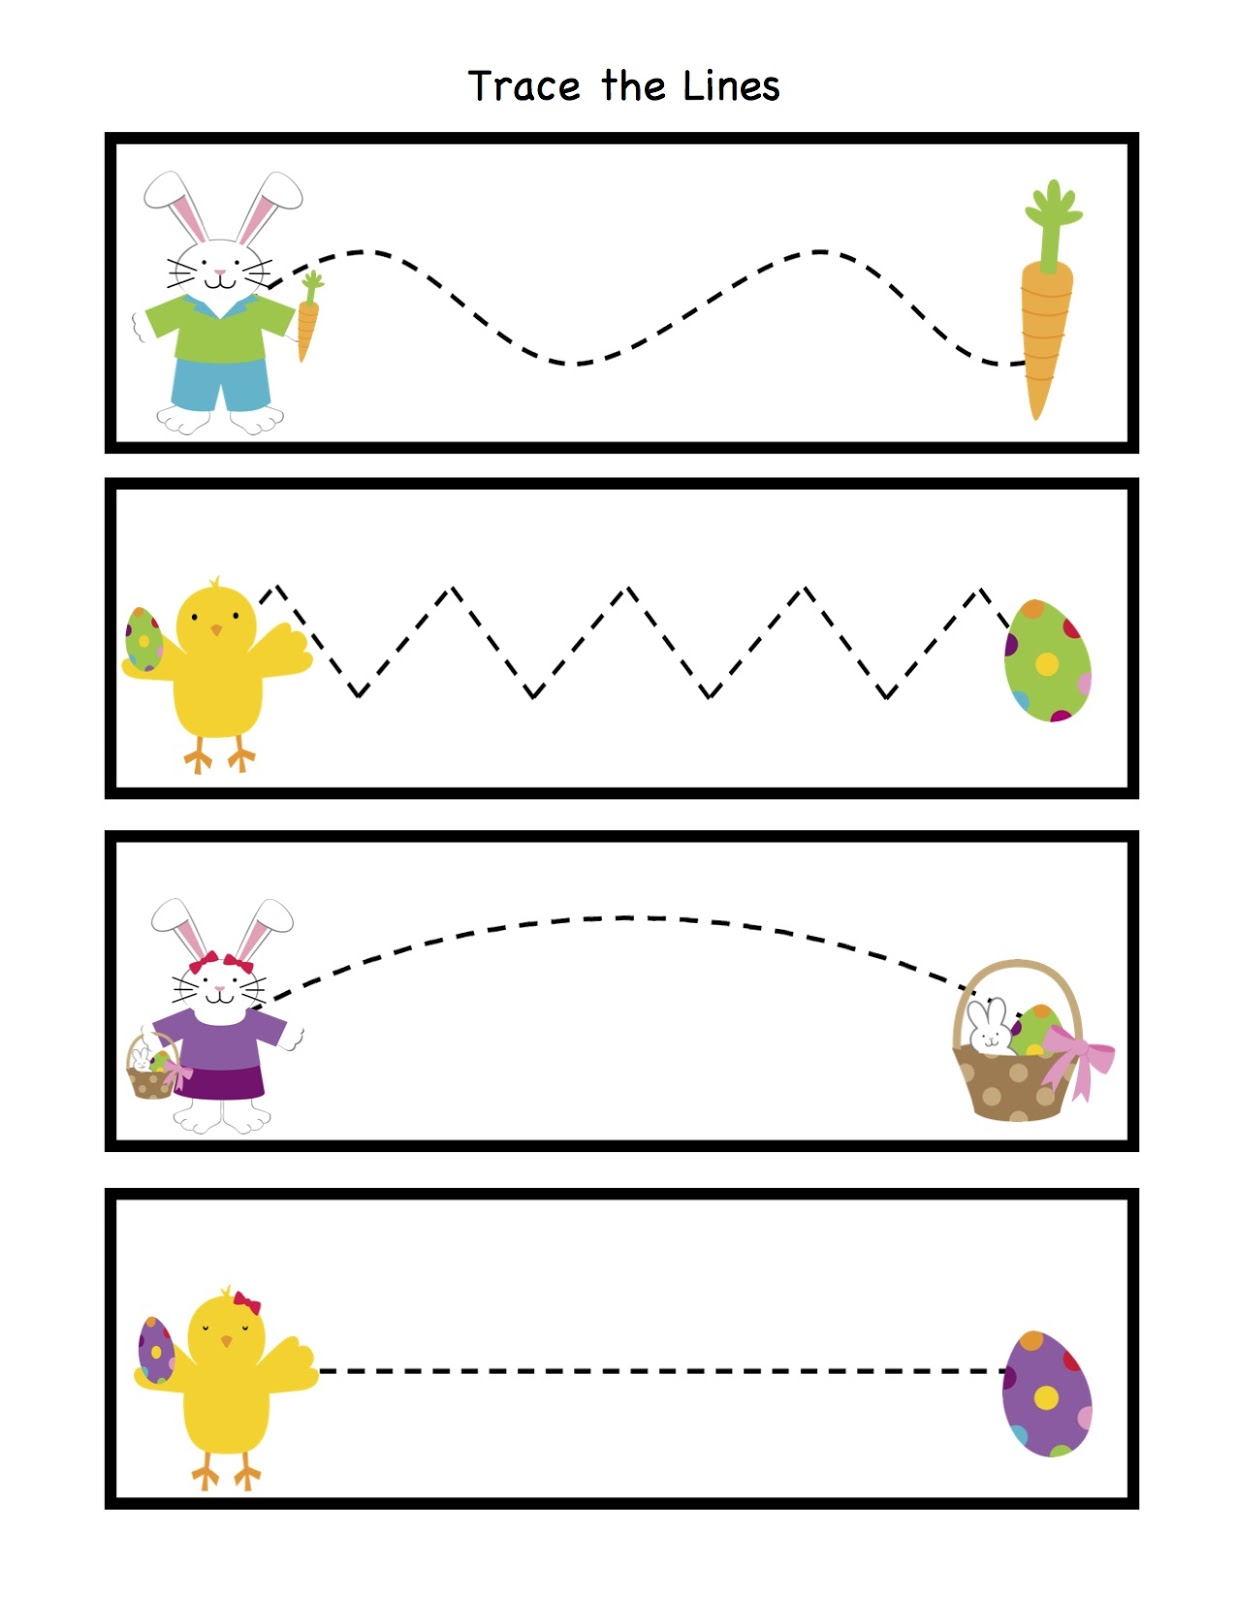 Worksheets Tracing Lines Worksheets craftsactvities and worksheets for preschooltoddler kindergarten easter trace the lines